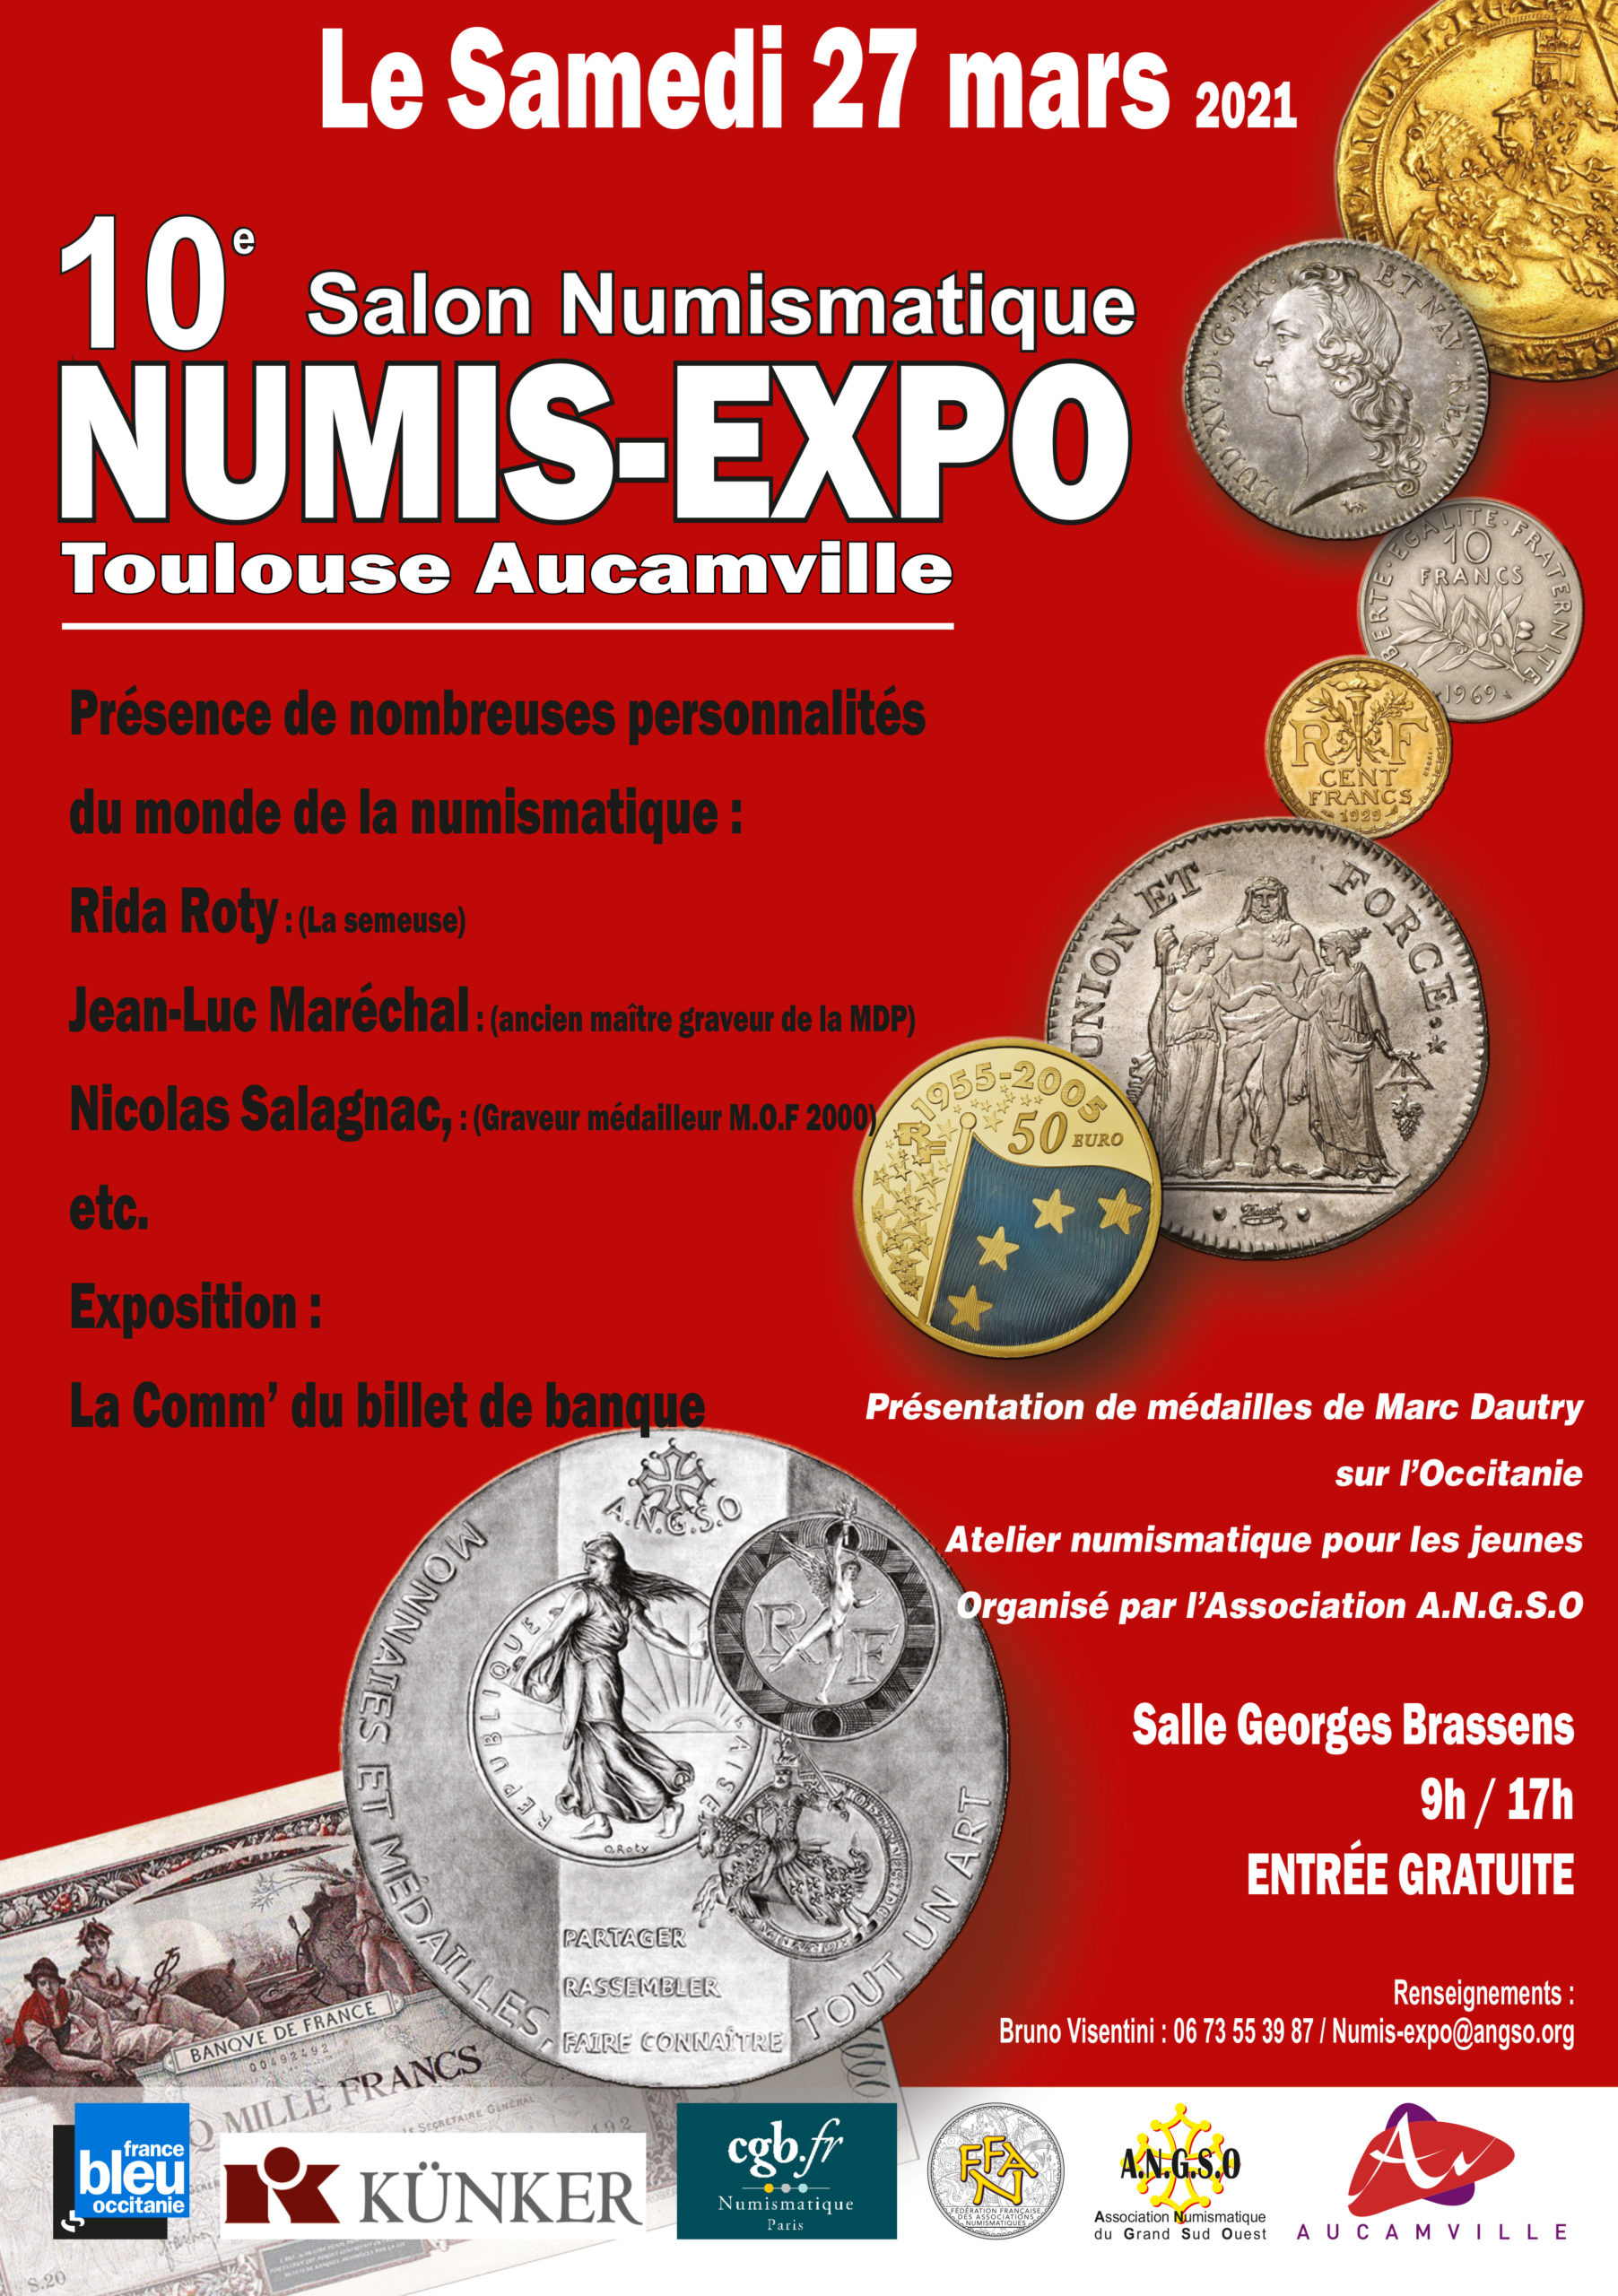 Affiche Numis-expo 2021_A3_Version 01.cdr